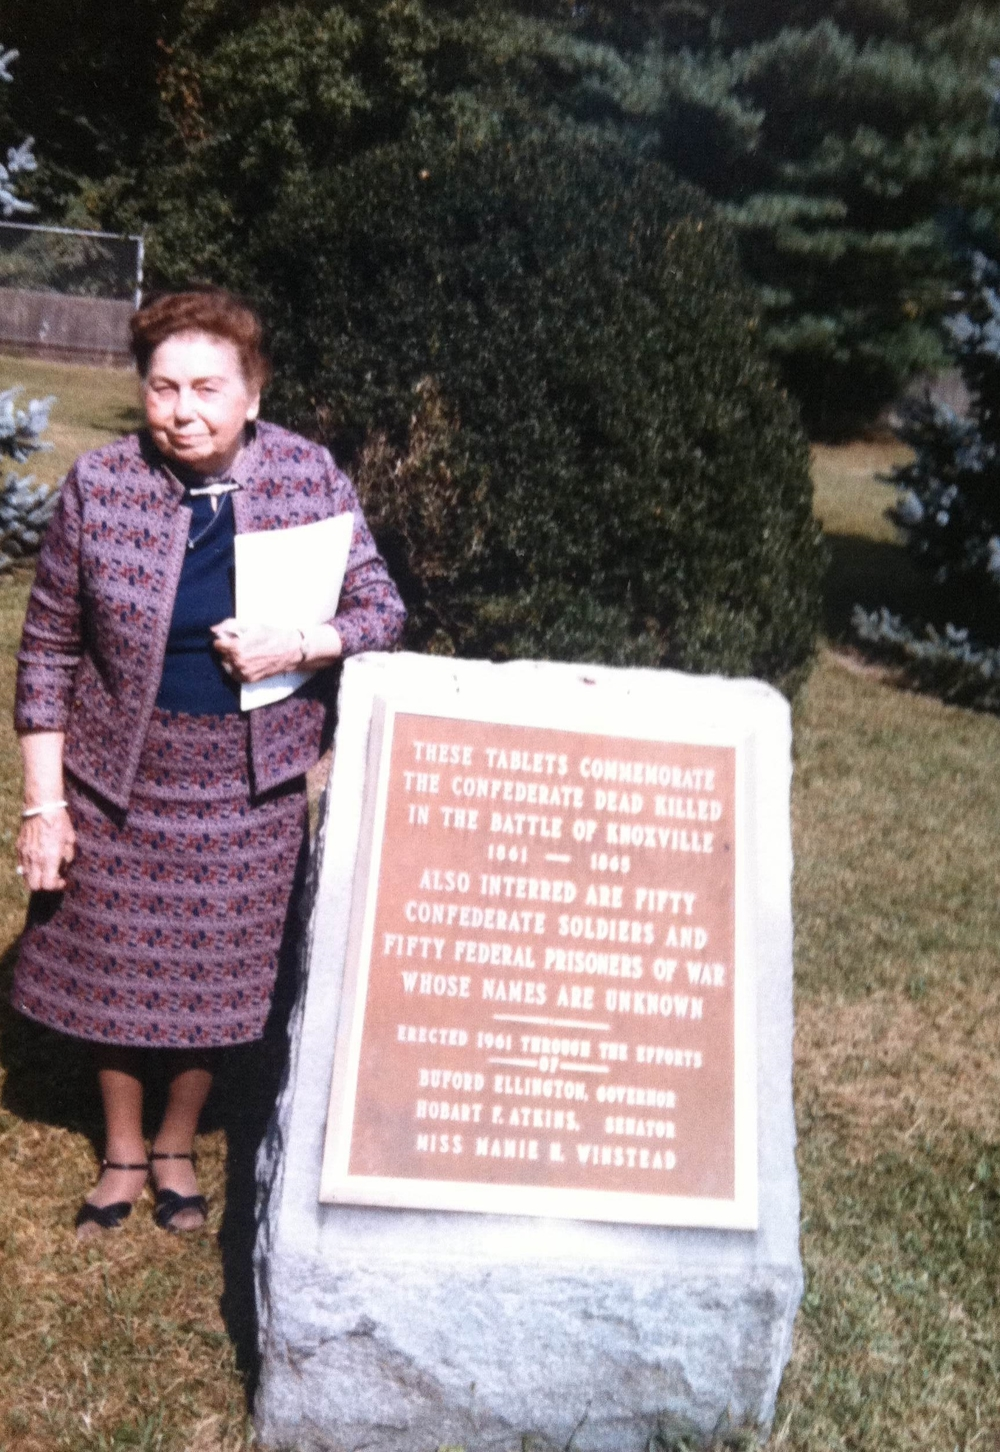 Mamie Winstead stands beside a commemorative plaque at Bethel Cemetery, 1985